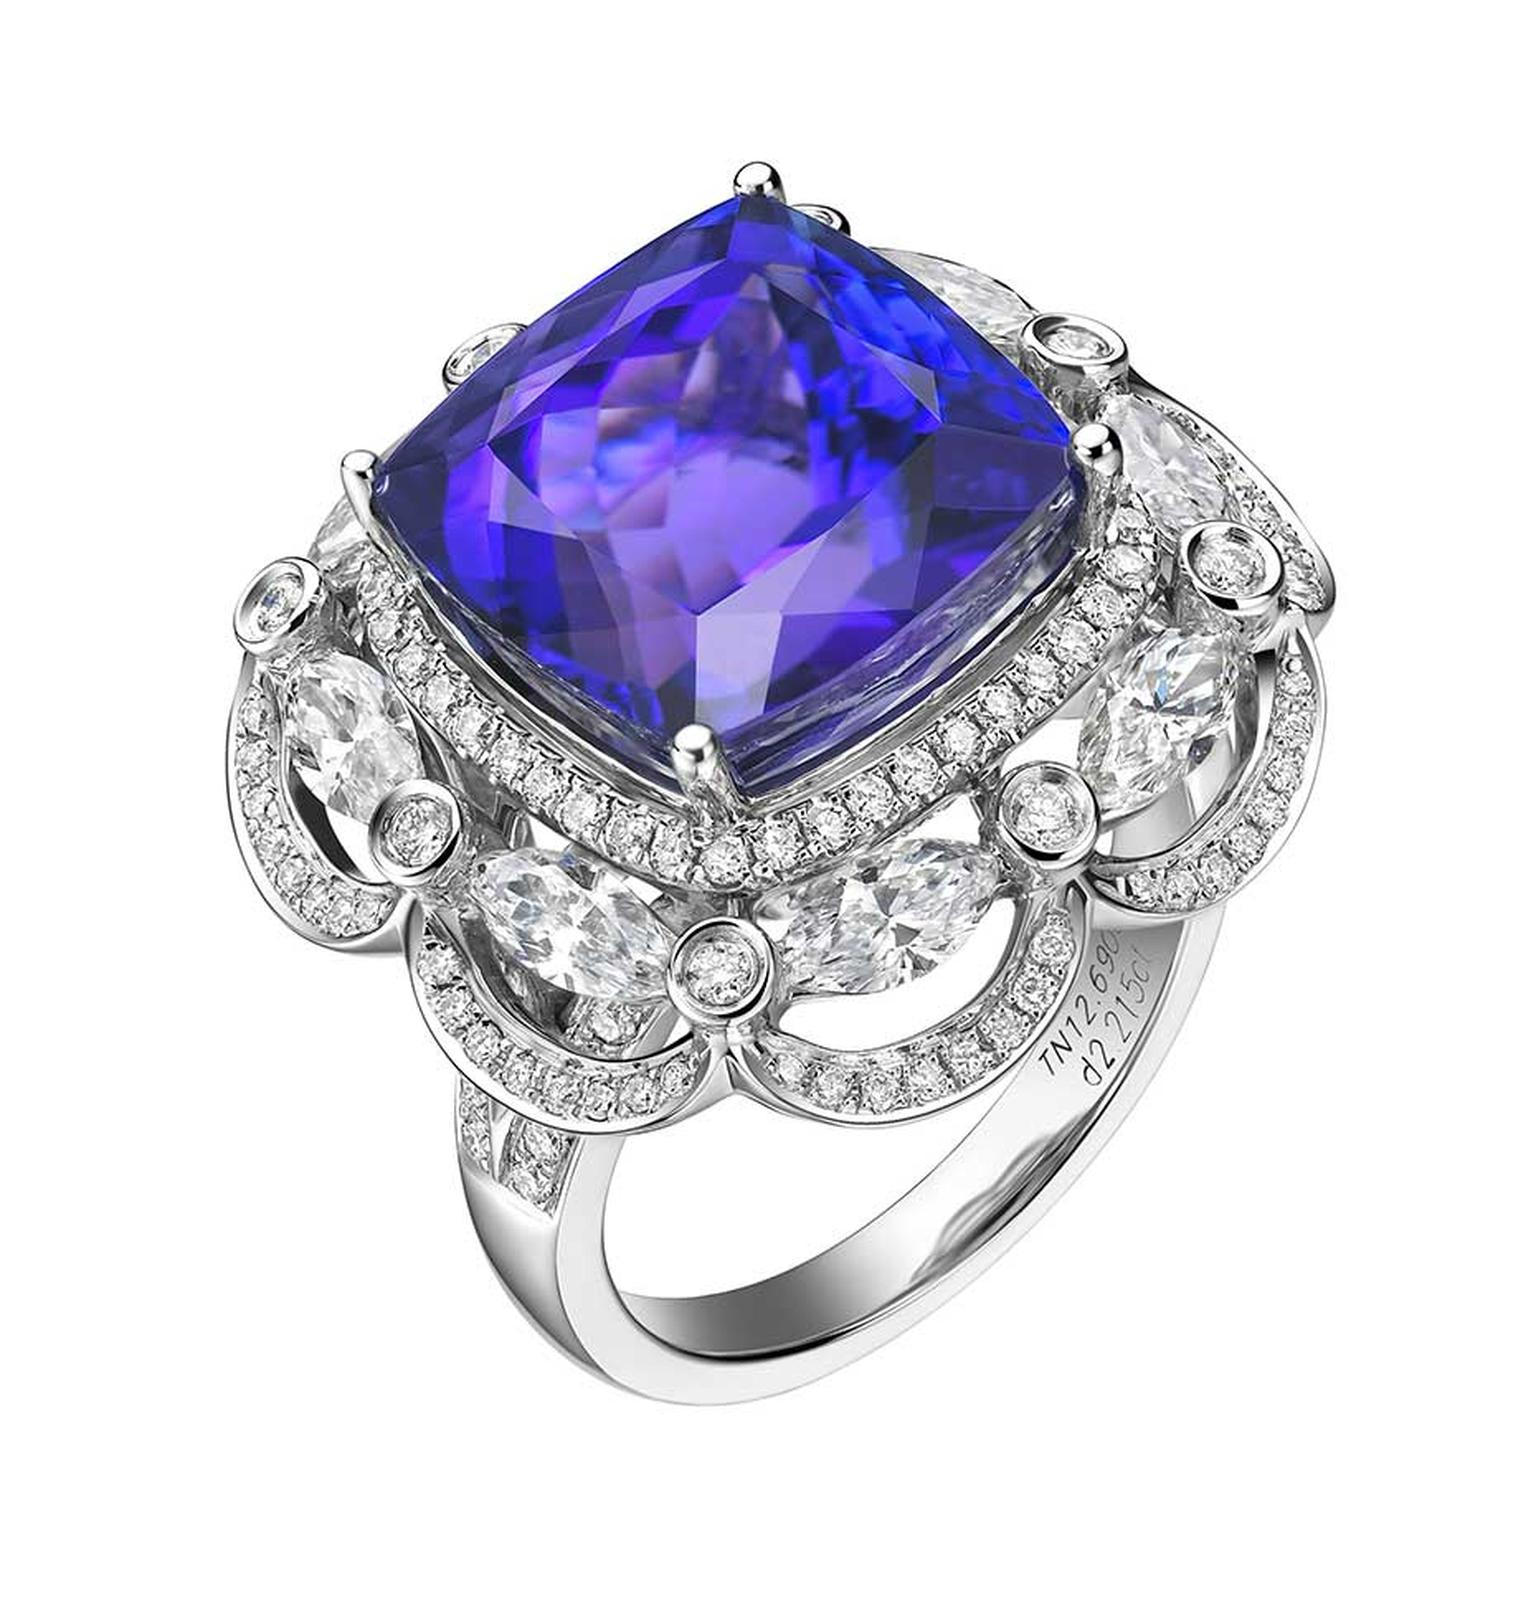 Tanzanite jewellery magical colour changing gems are the perfect